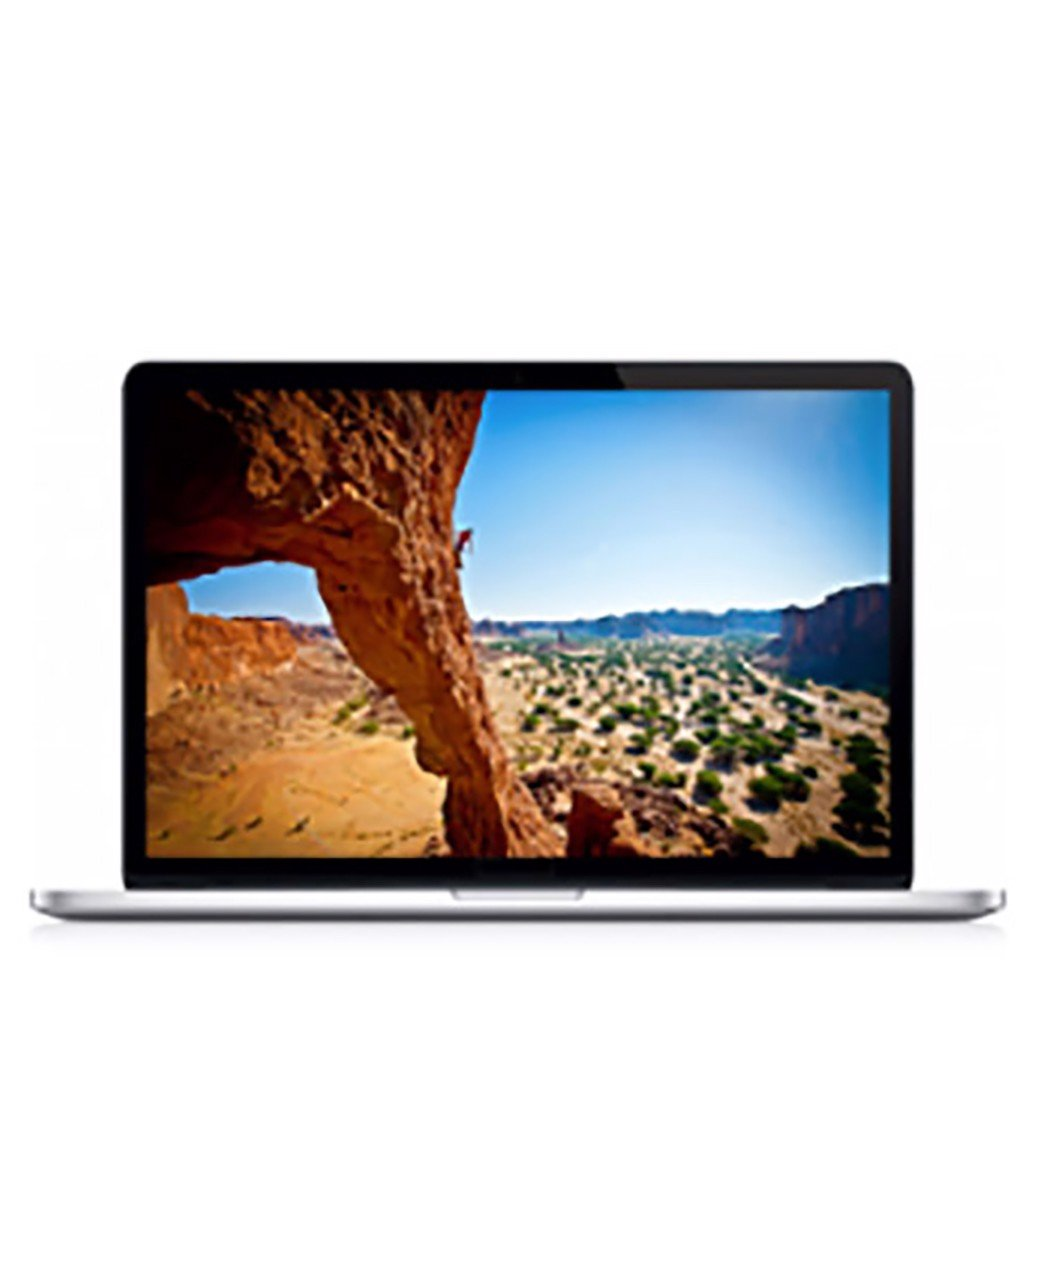 Macbook Pro 15.4 inch SSD 256 - Core i7 RAM 16GB - 2015